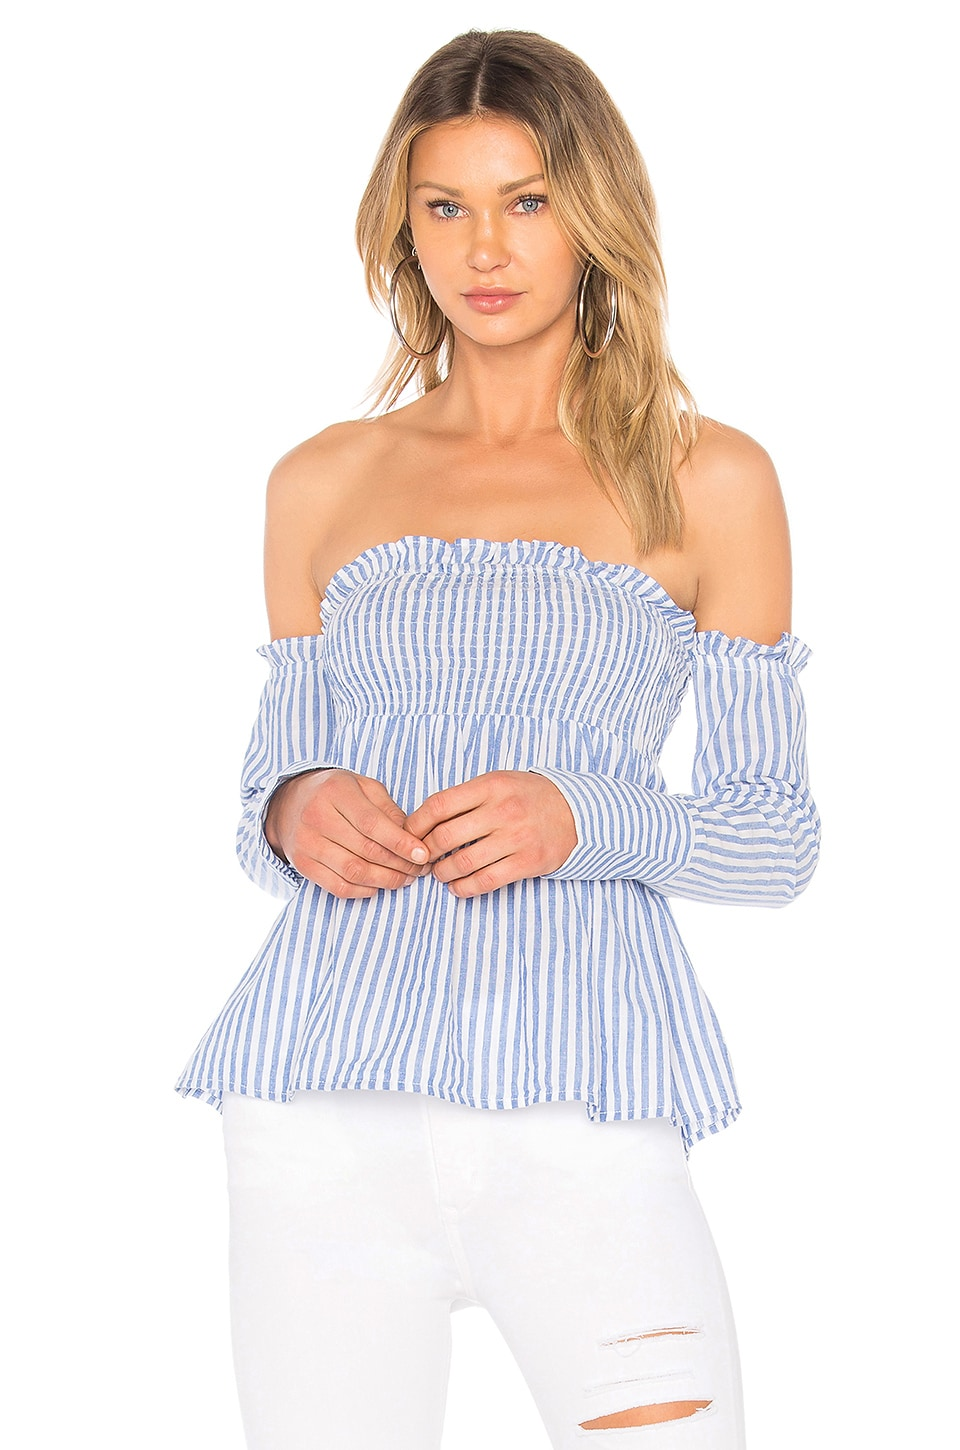 L'Academie Erin Top in Blue Stripe